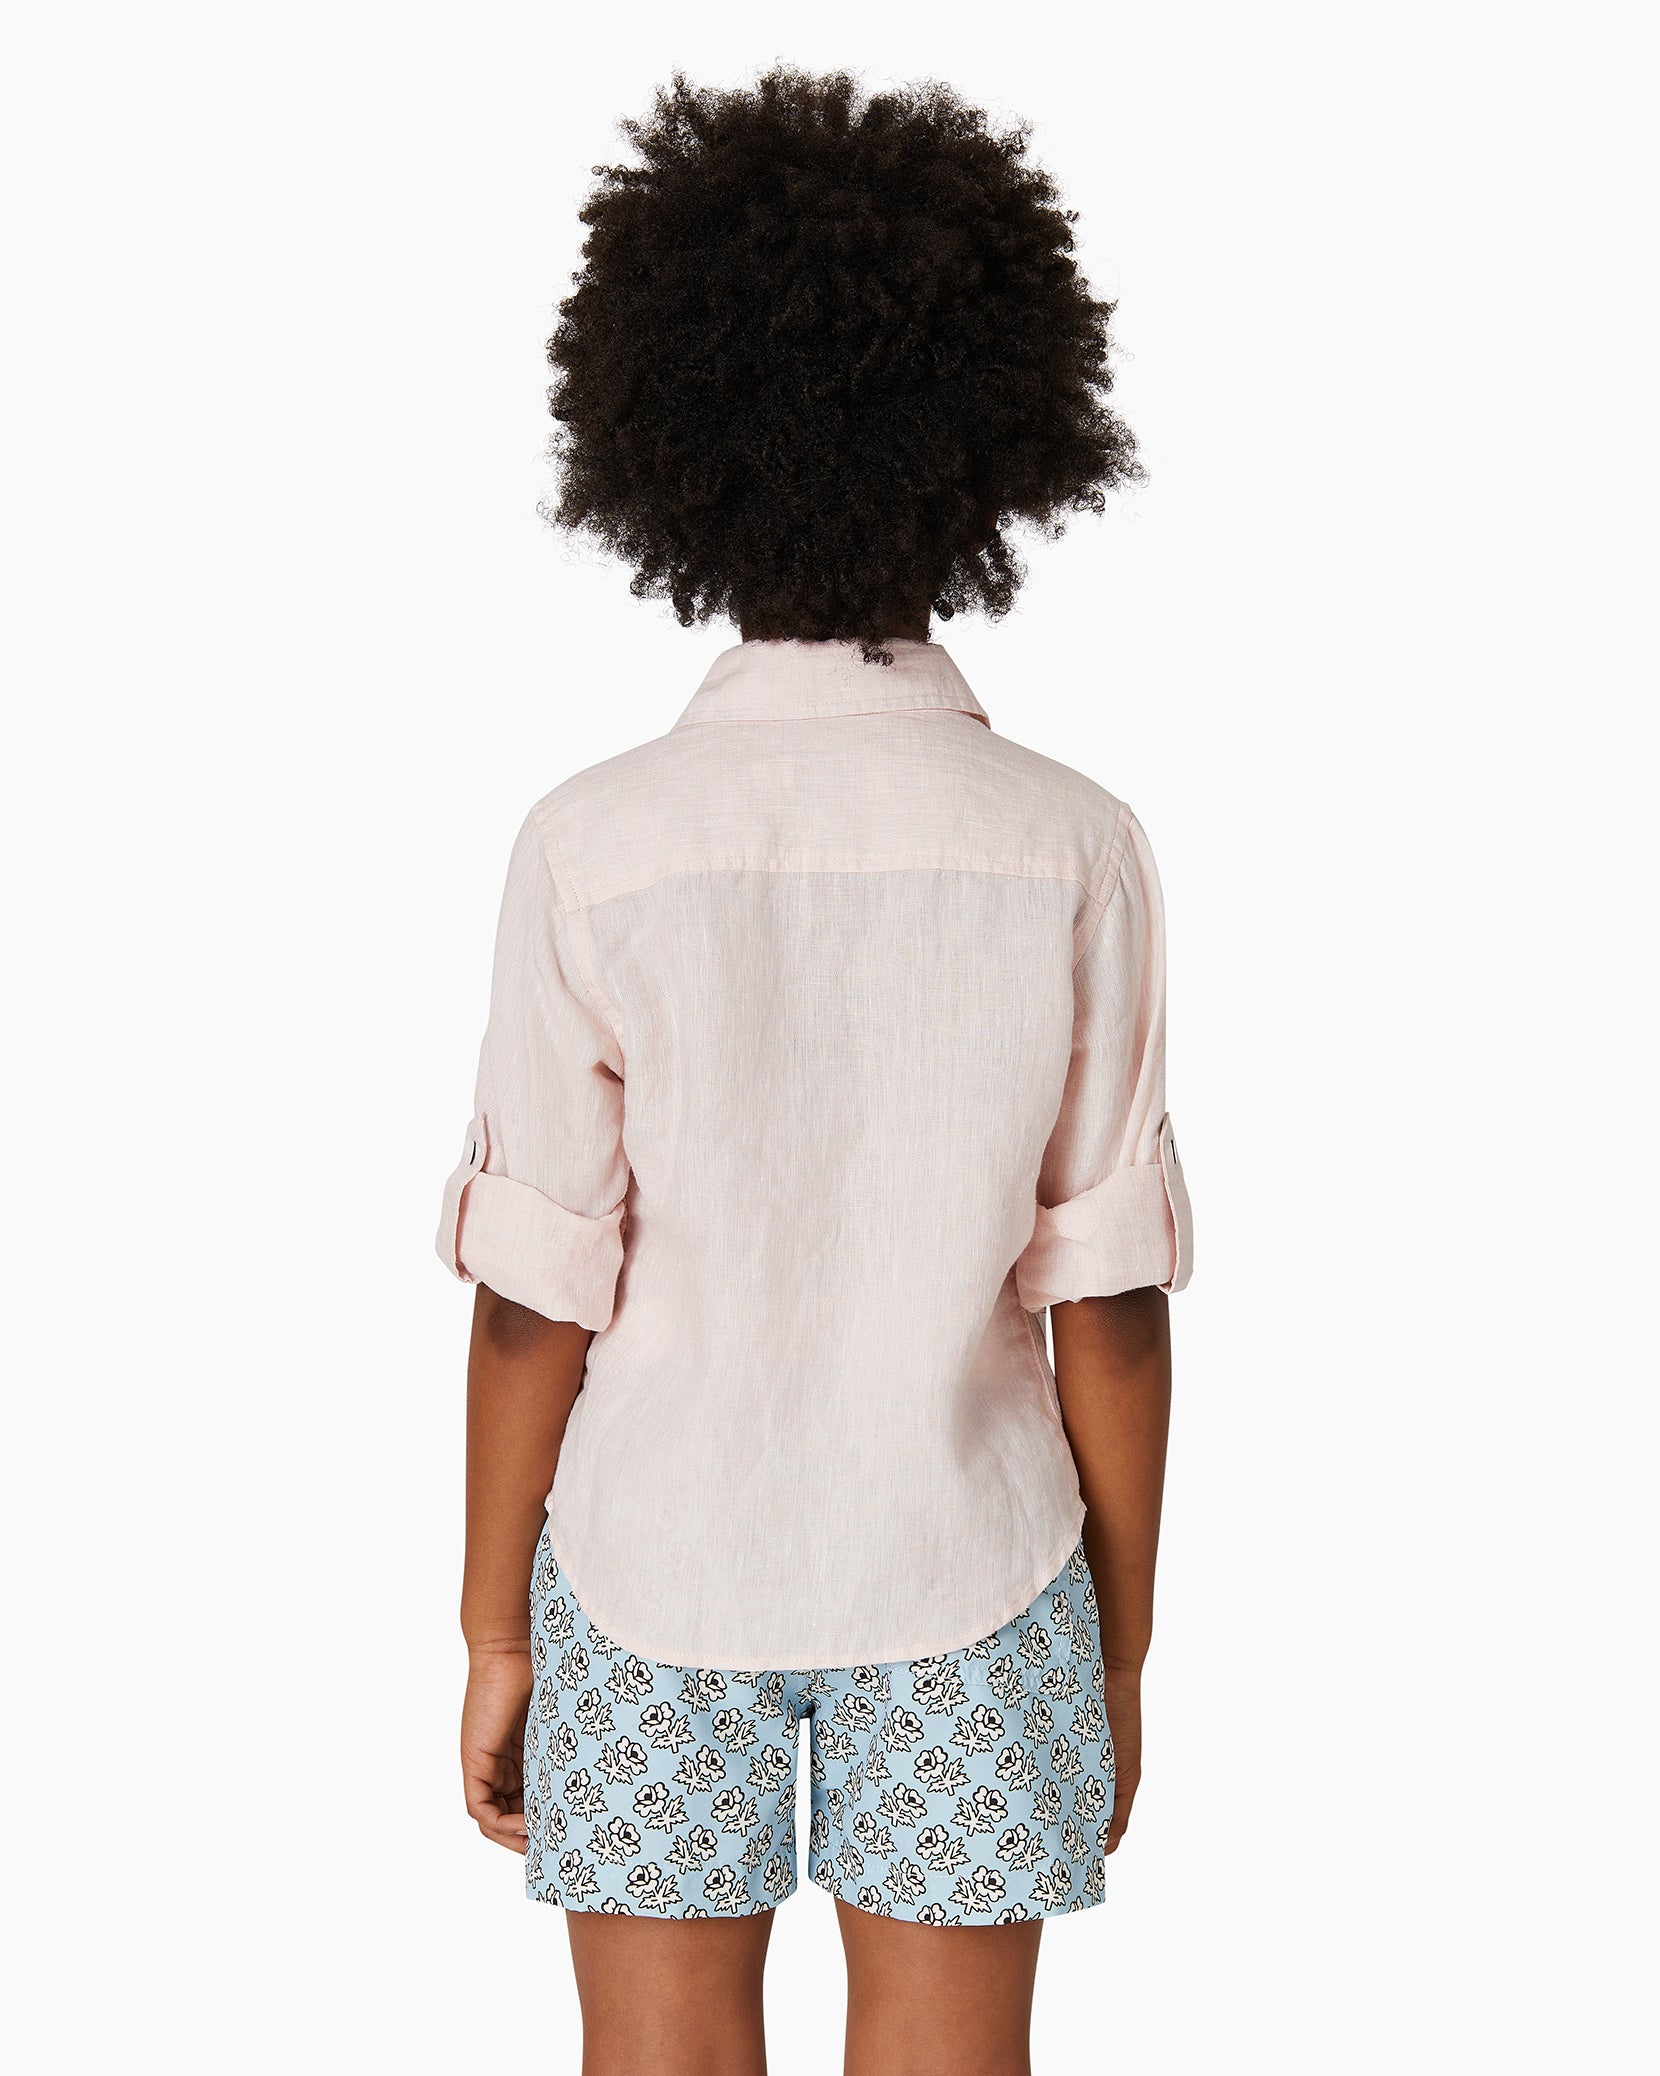 Boys Linen Garret Shirt in Petal - 9 - Onia